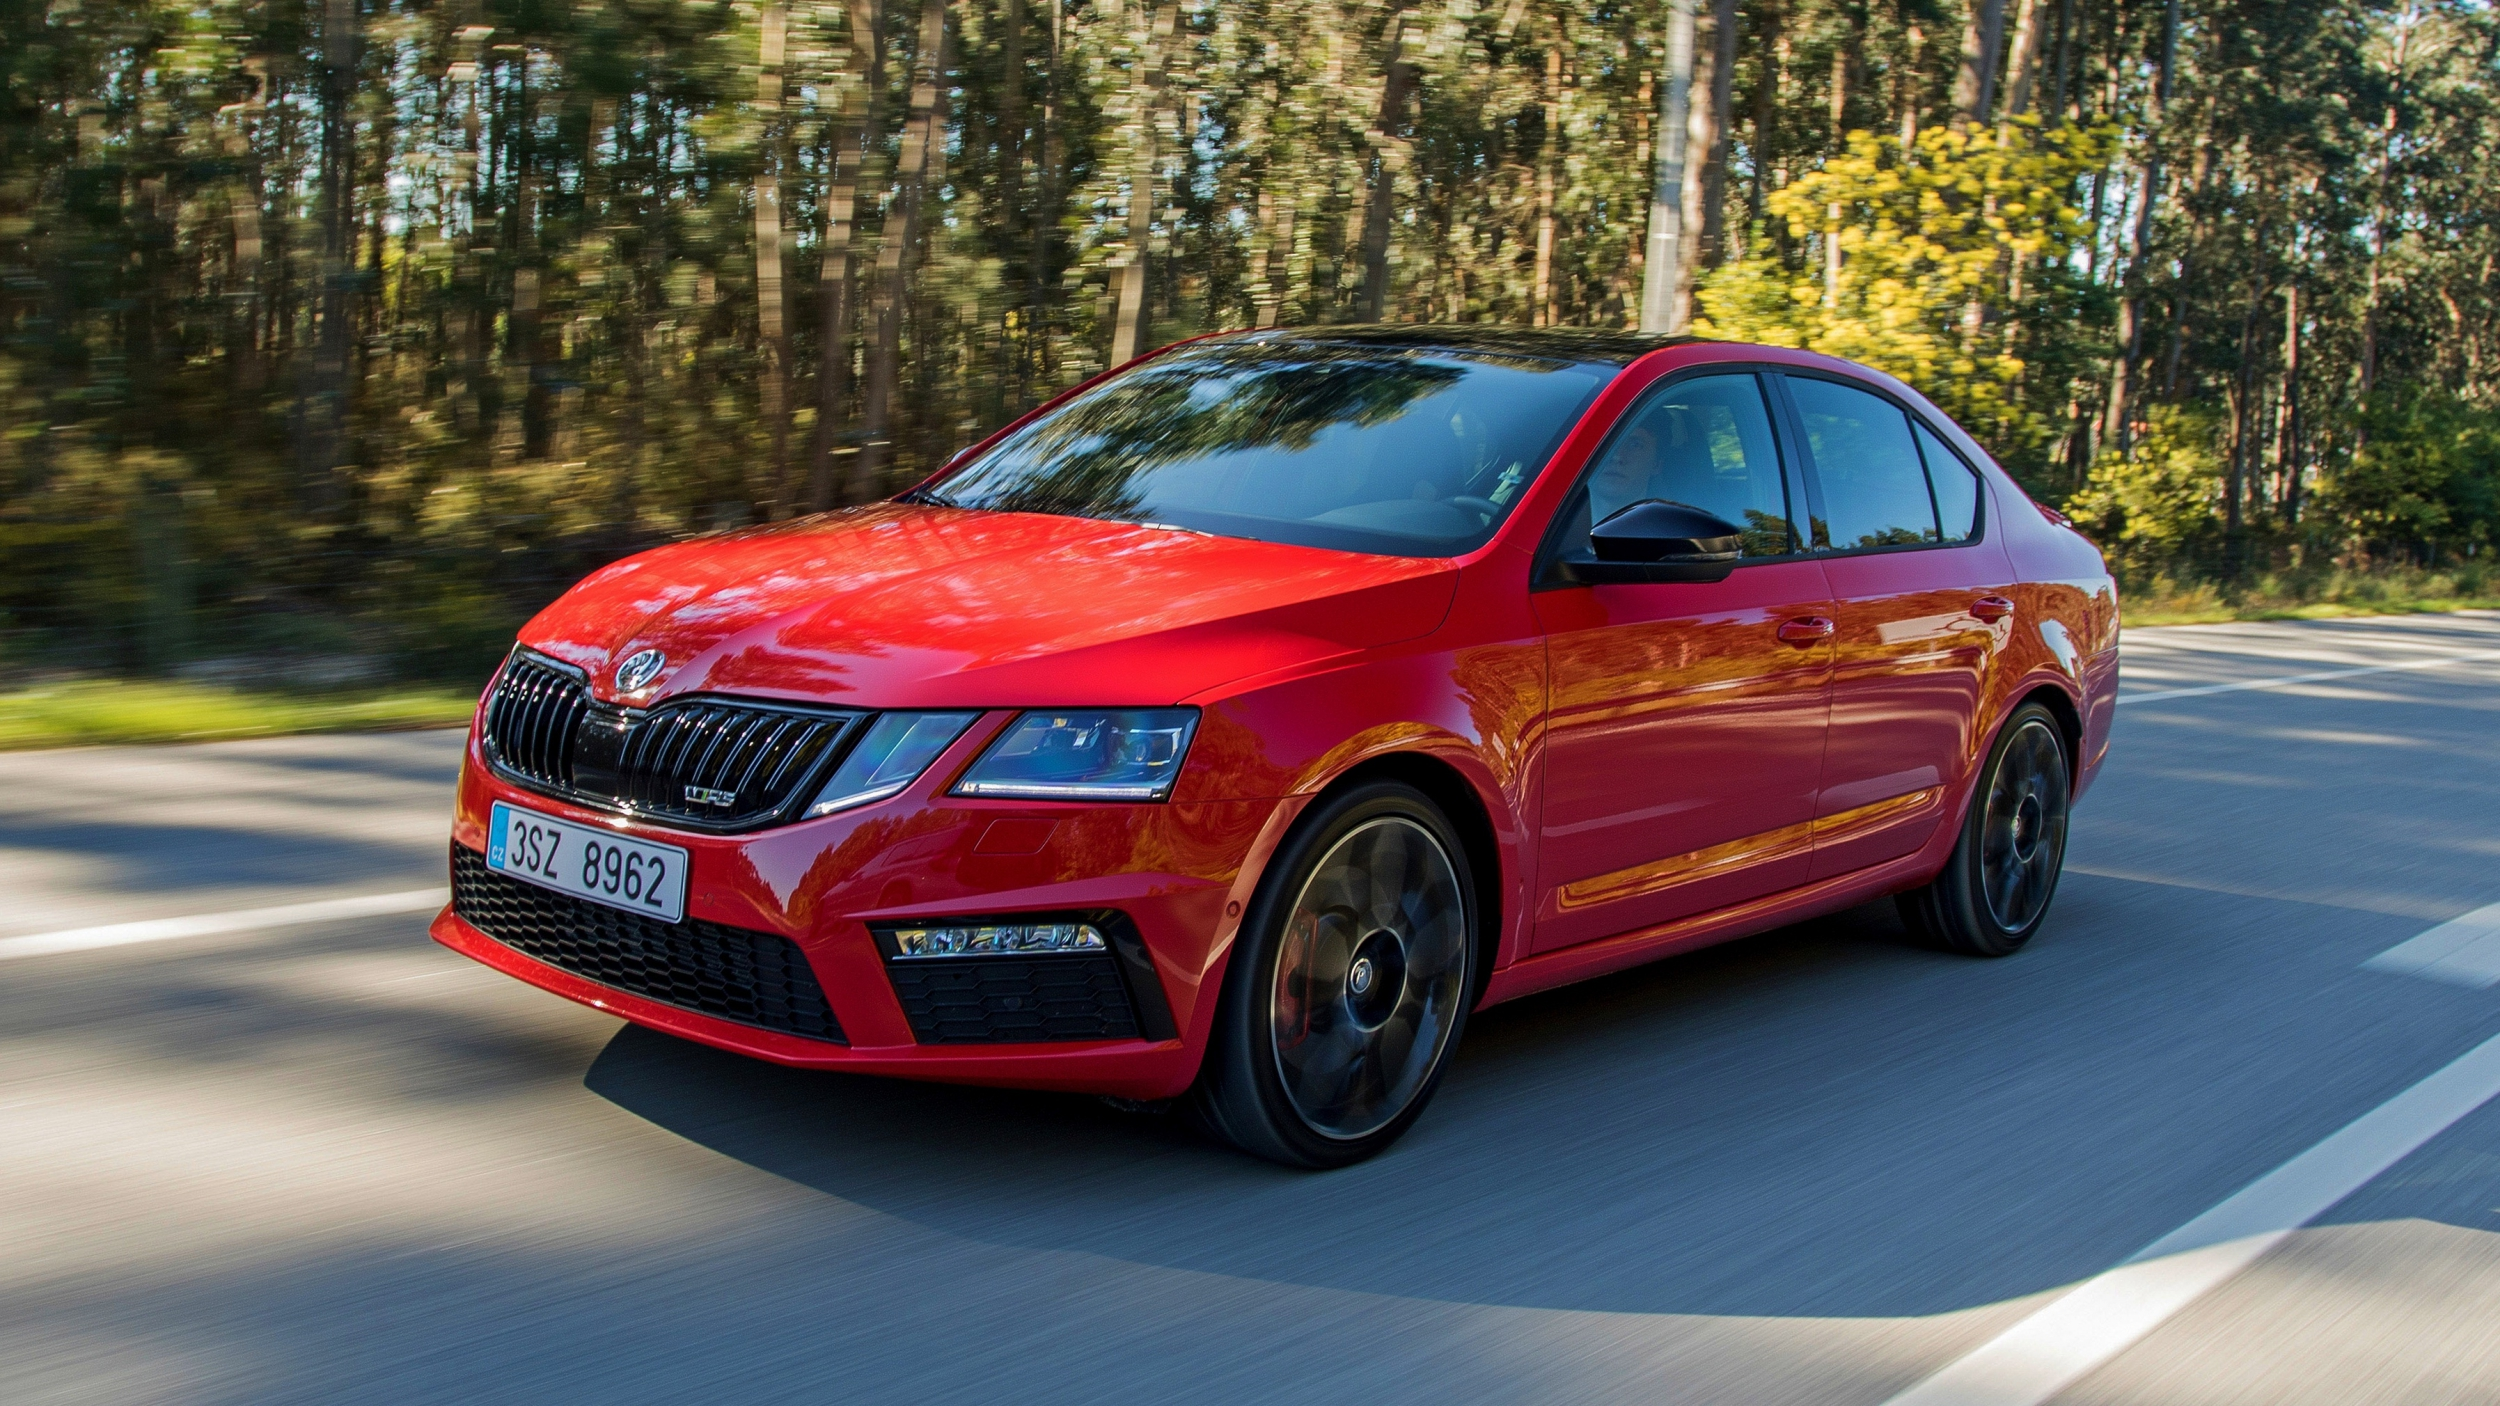 news skoda brings 2018 octavia rs245 duo to oz. Black Bedroom Furniture Sets. Home Design Ideas